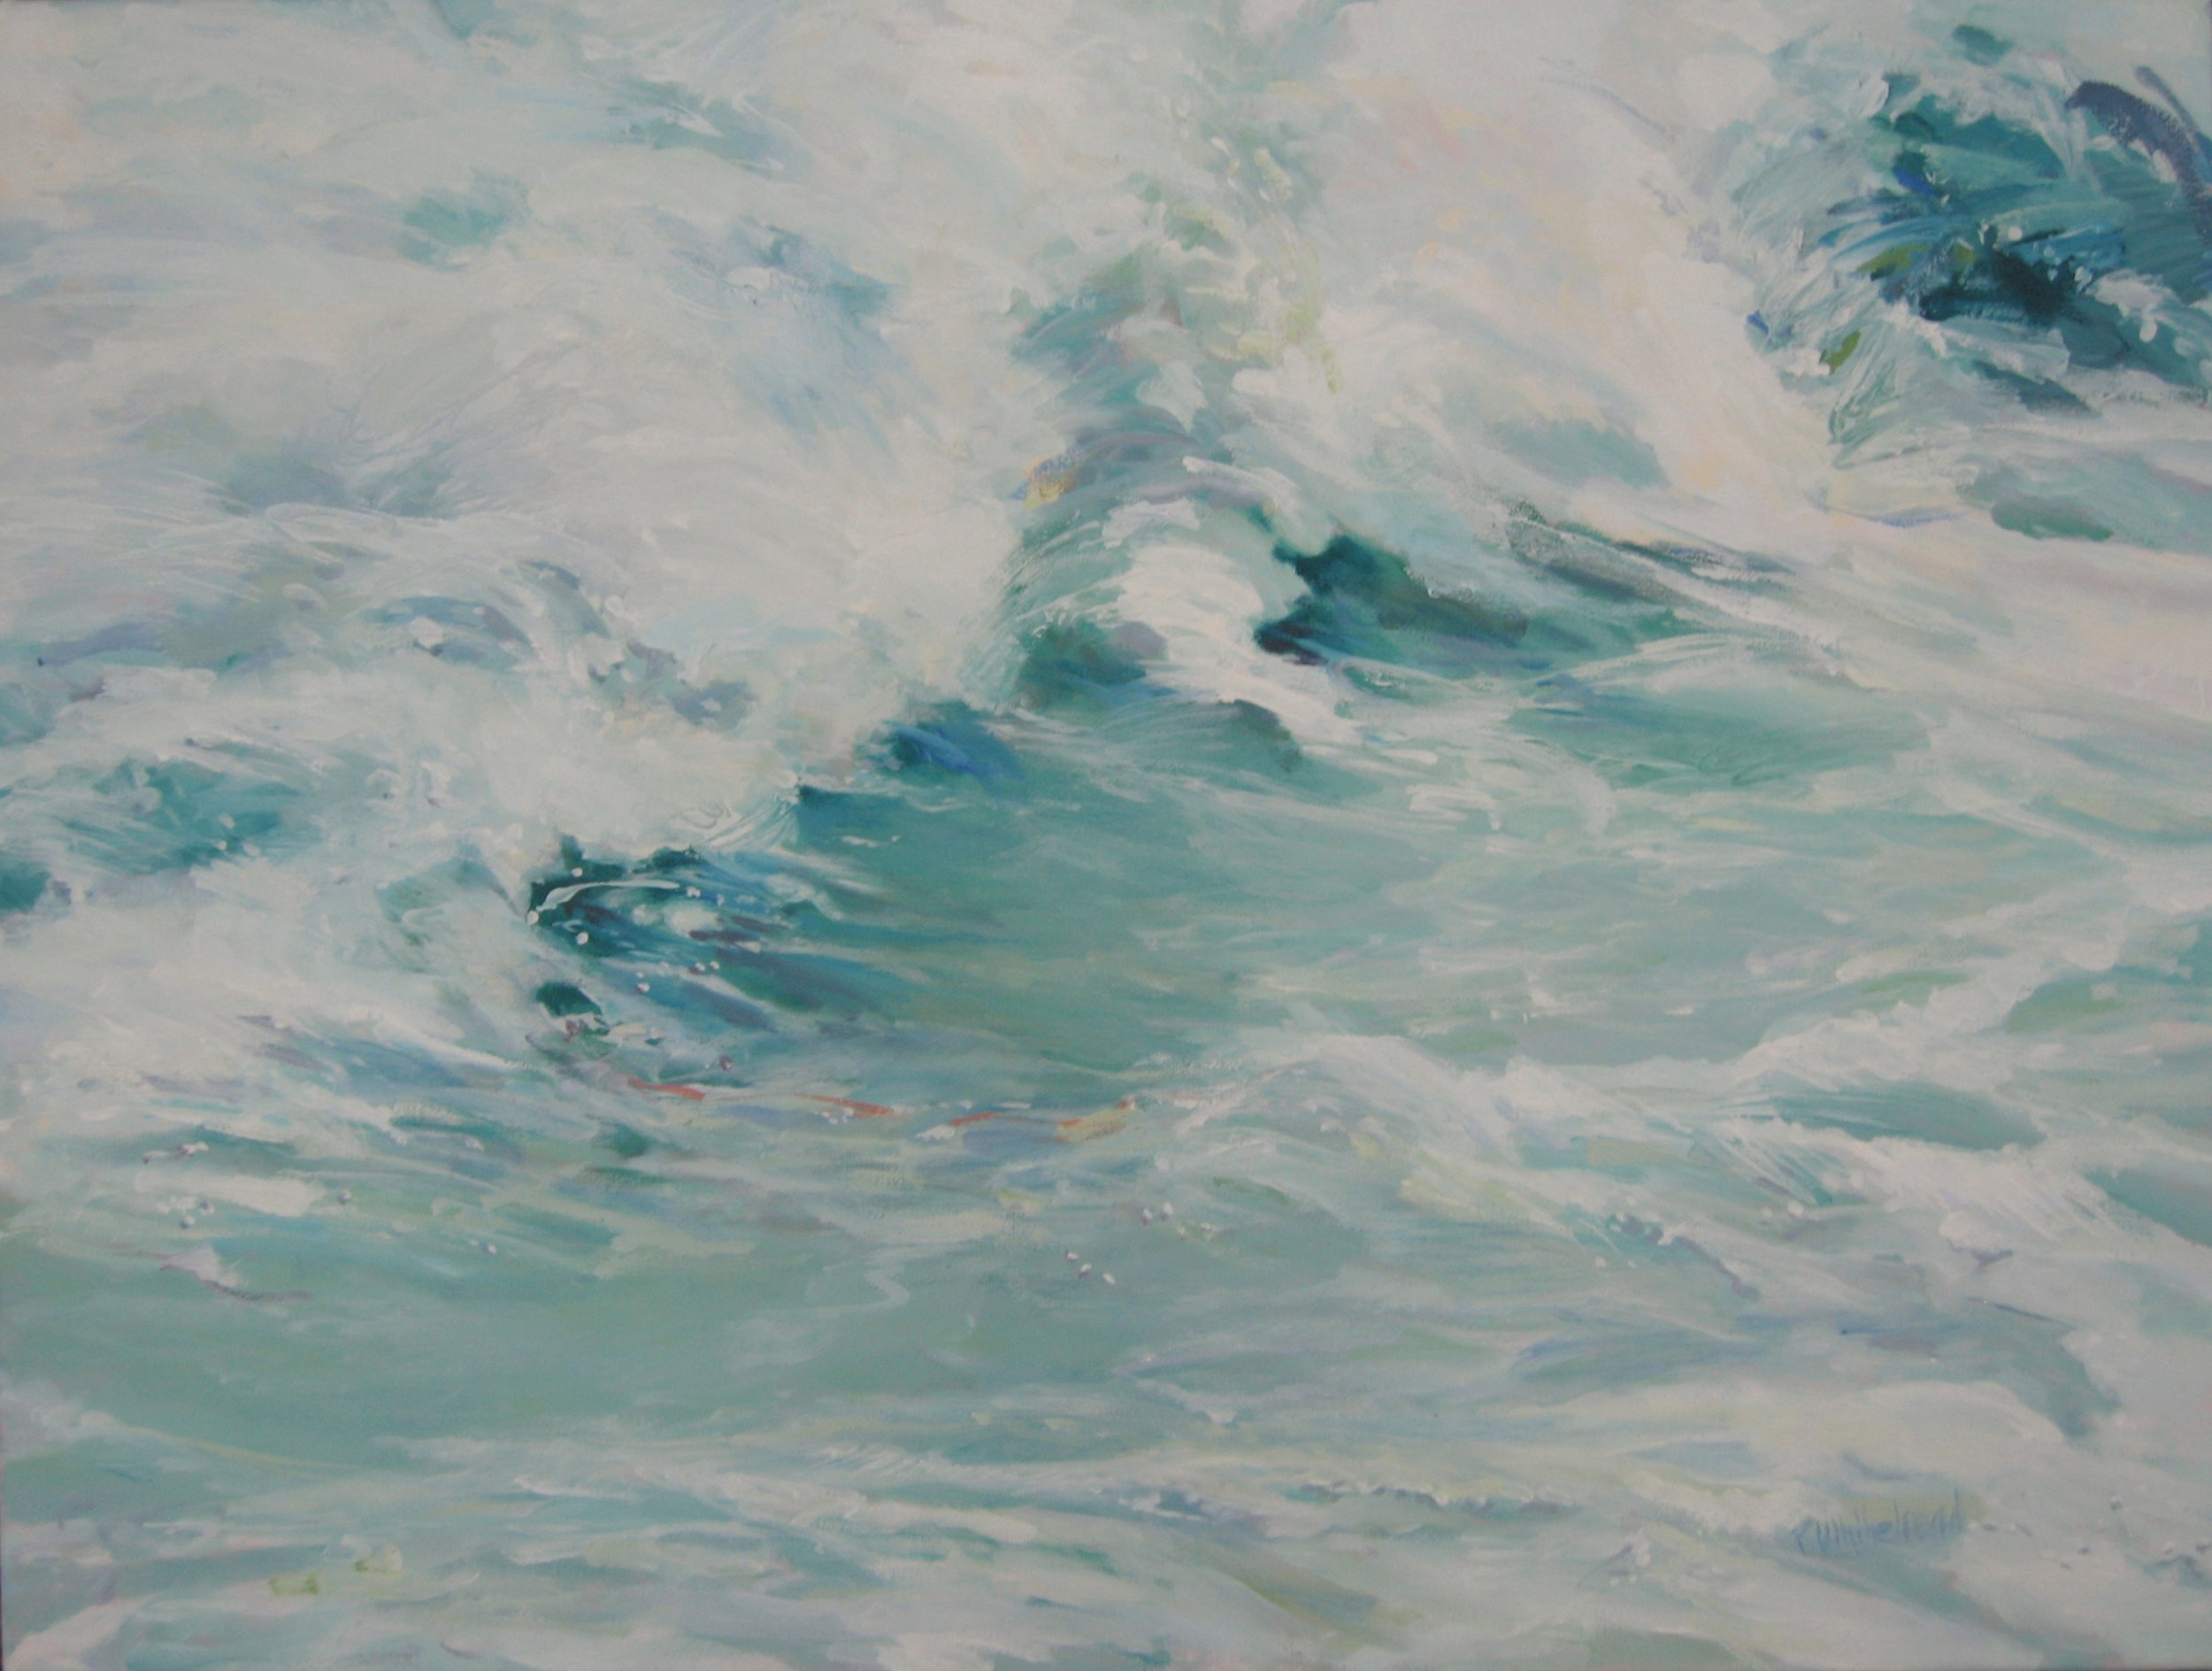 """Wave #27, 24 x 18"""", Oil (sold)"""